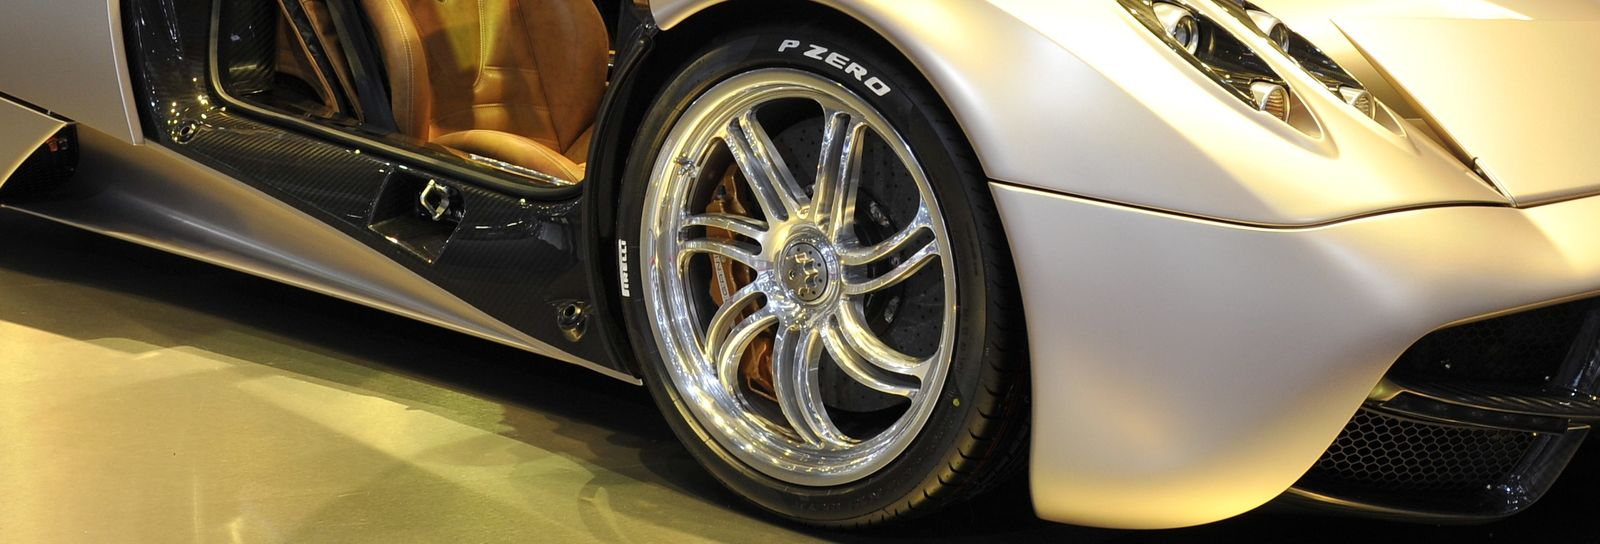 Should I Buy A Car With Big Alloy Wheels Carwow Alfa Romeo Magnesium The Beautiful On Pagani Huayra Cost As Much Hatchback To Repair